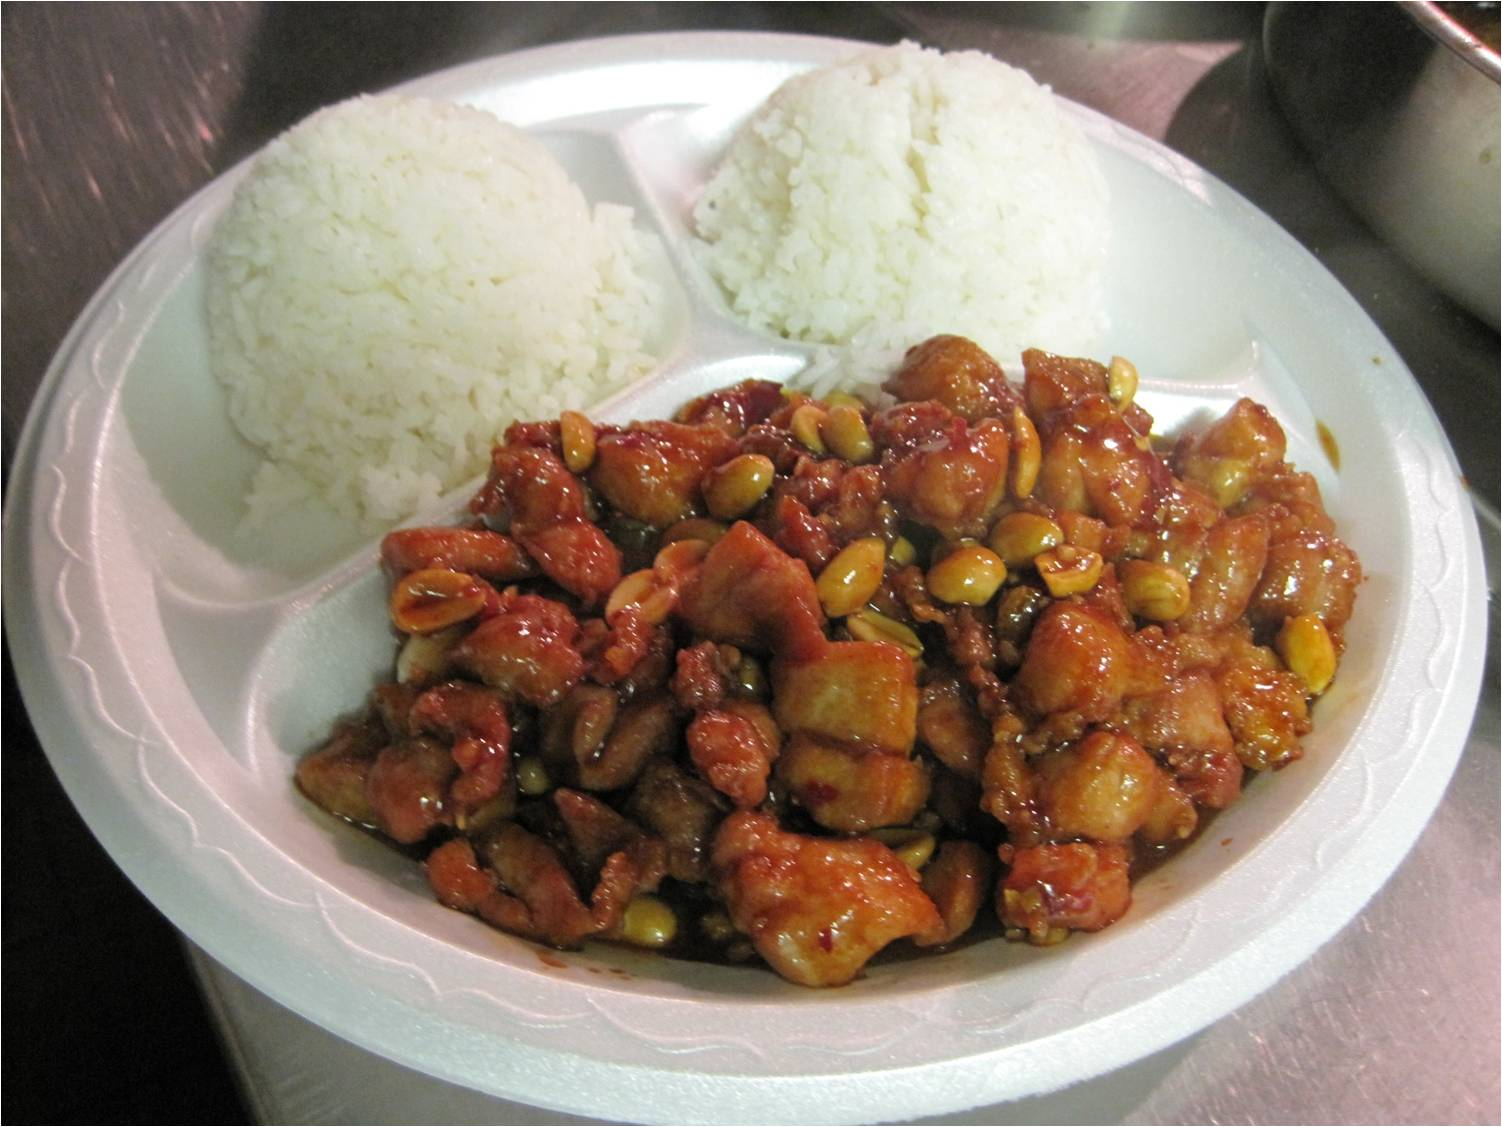 New dynasty chinese restaurant chinese food american for American cuisine washington dc